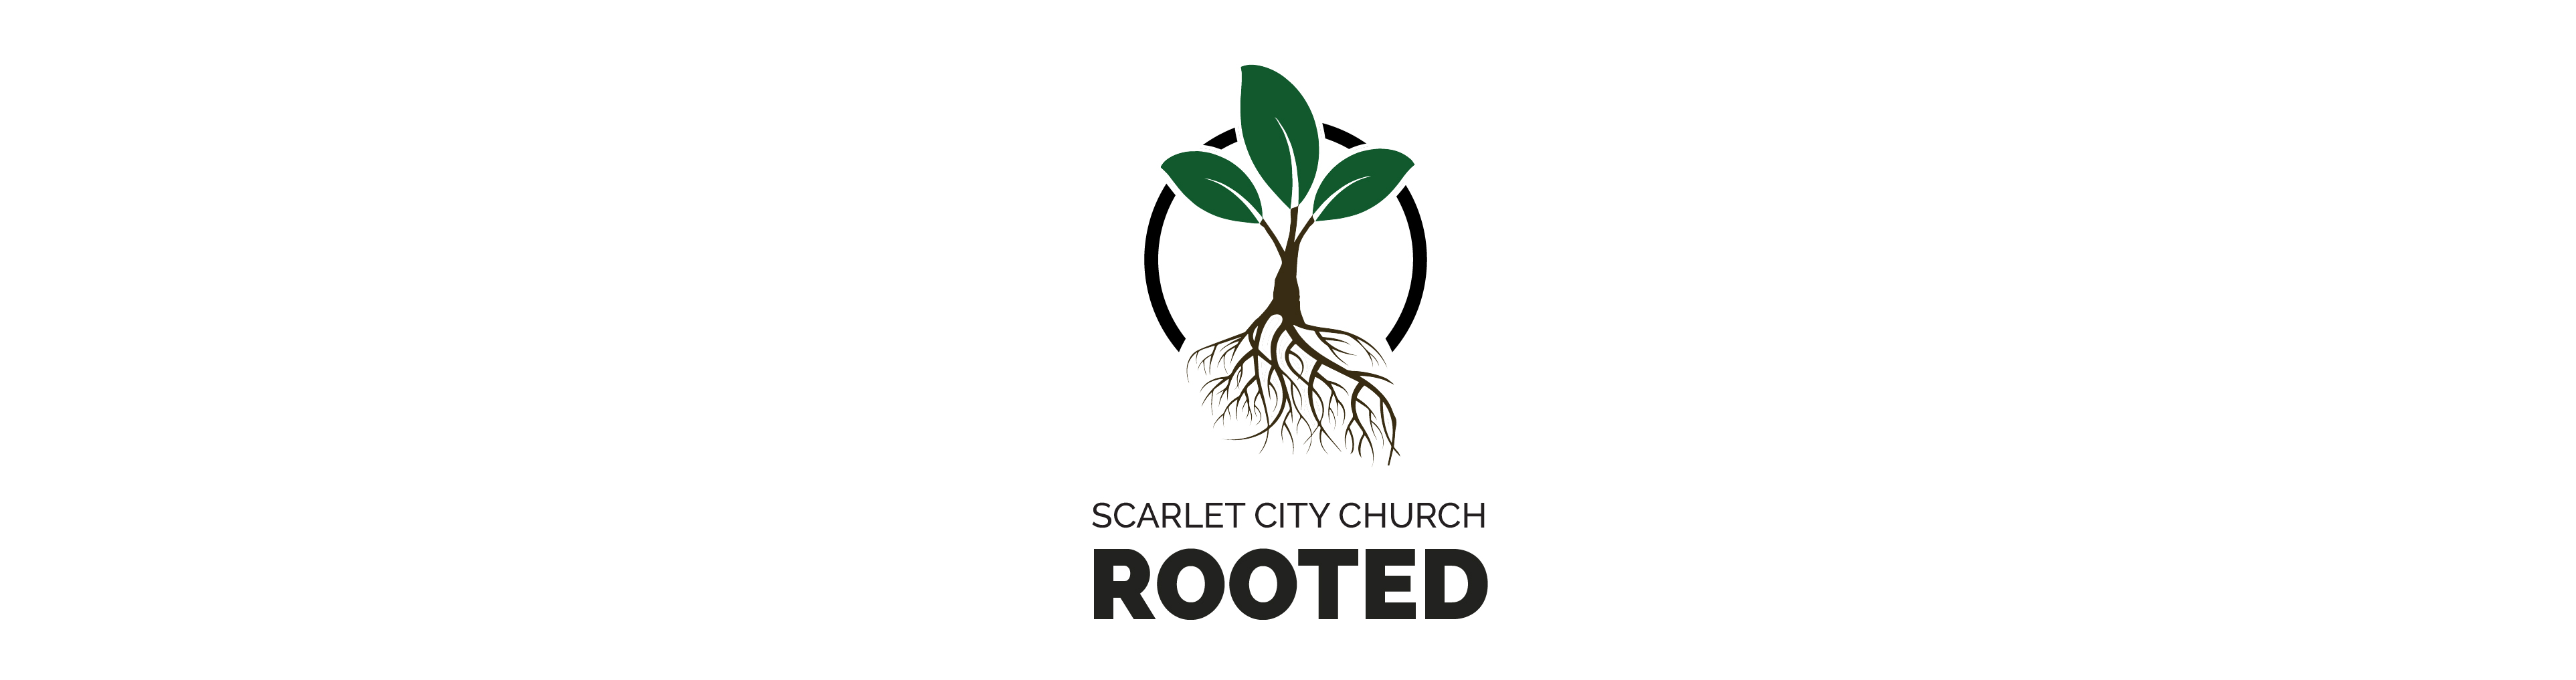 Rooted banner